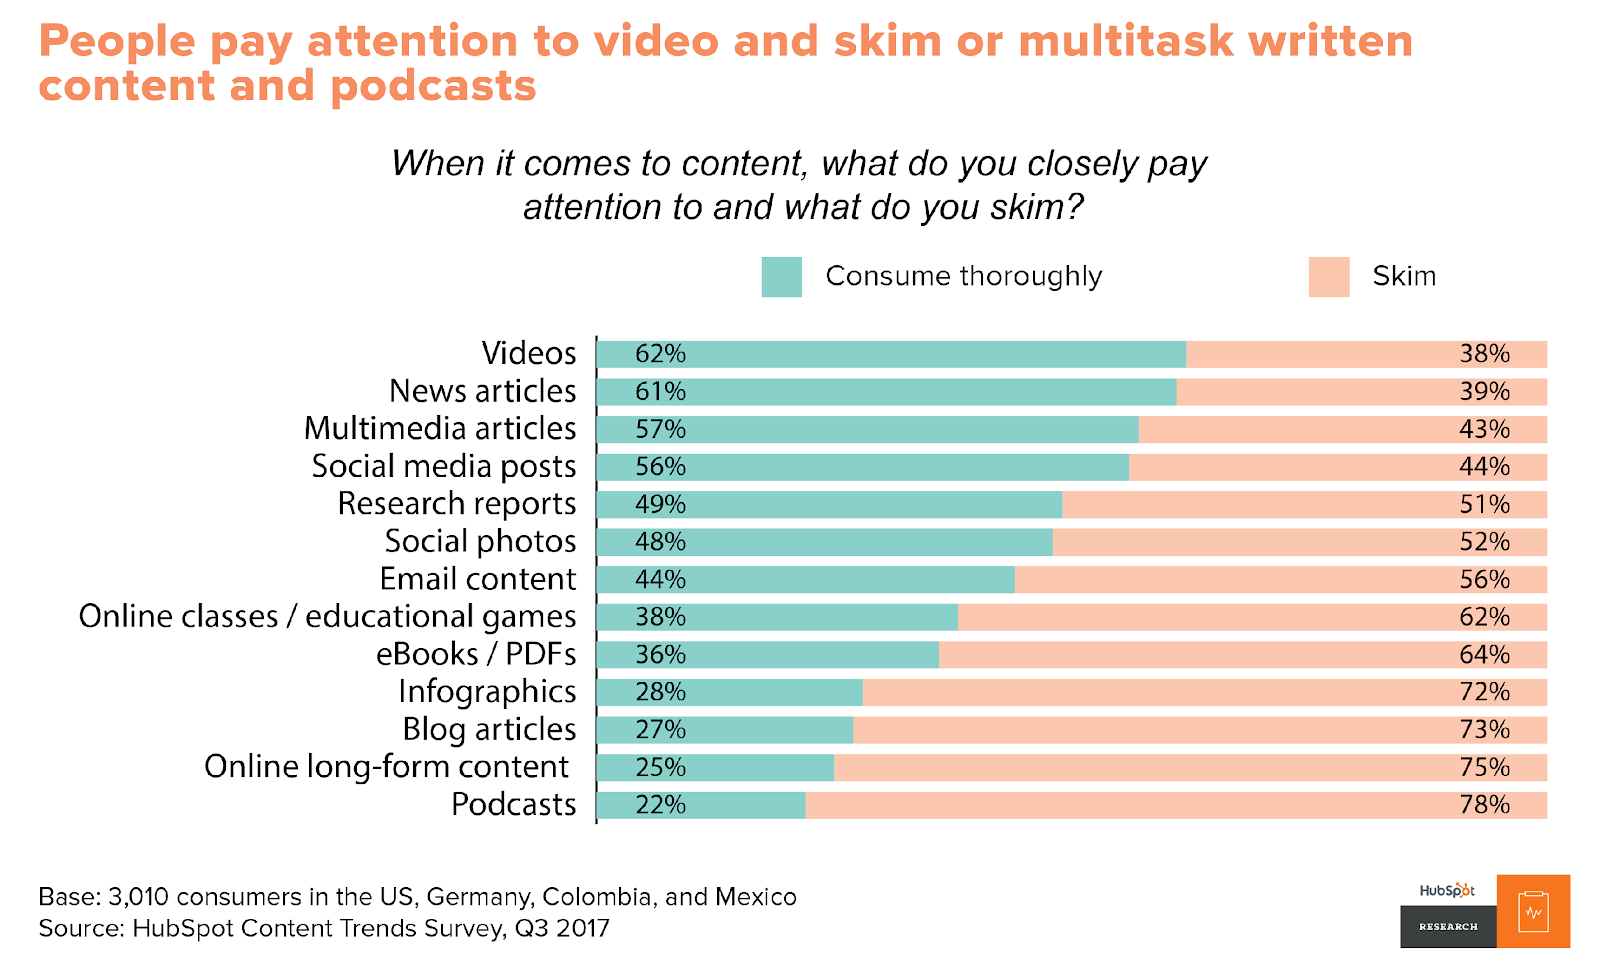 Attention paid to video marketing content